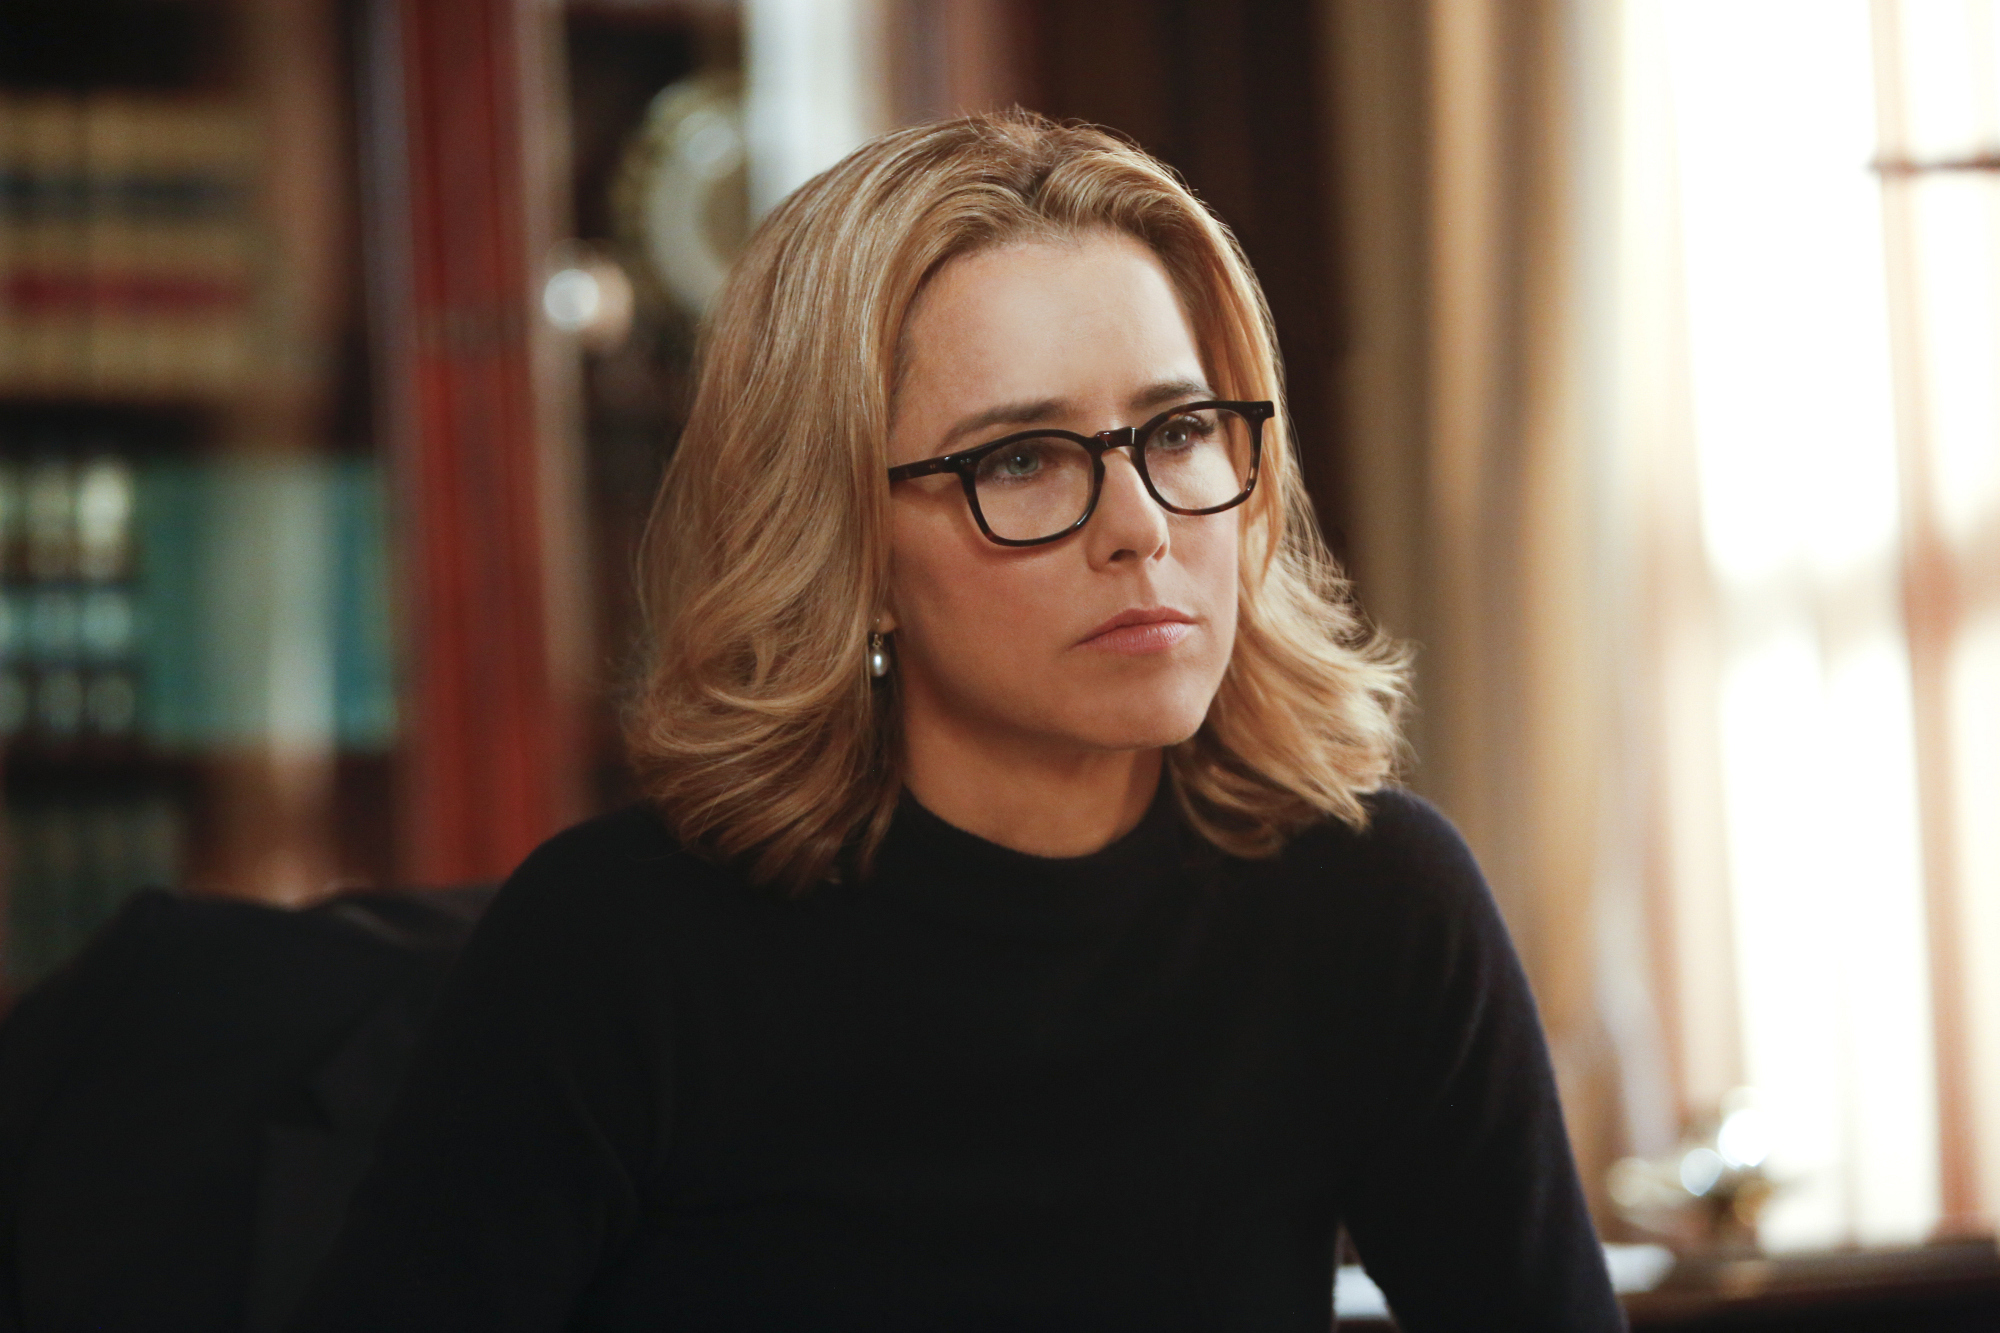 12. Téa Leoni was born in New York City.